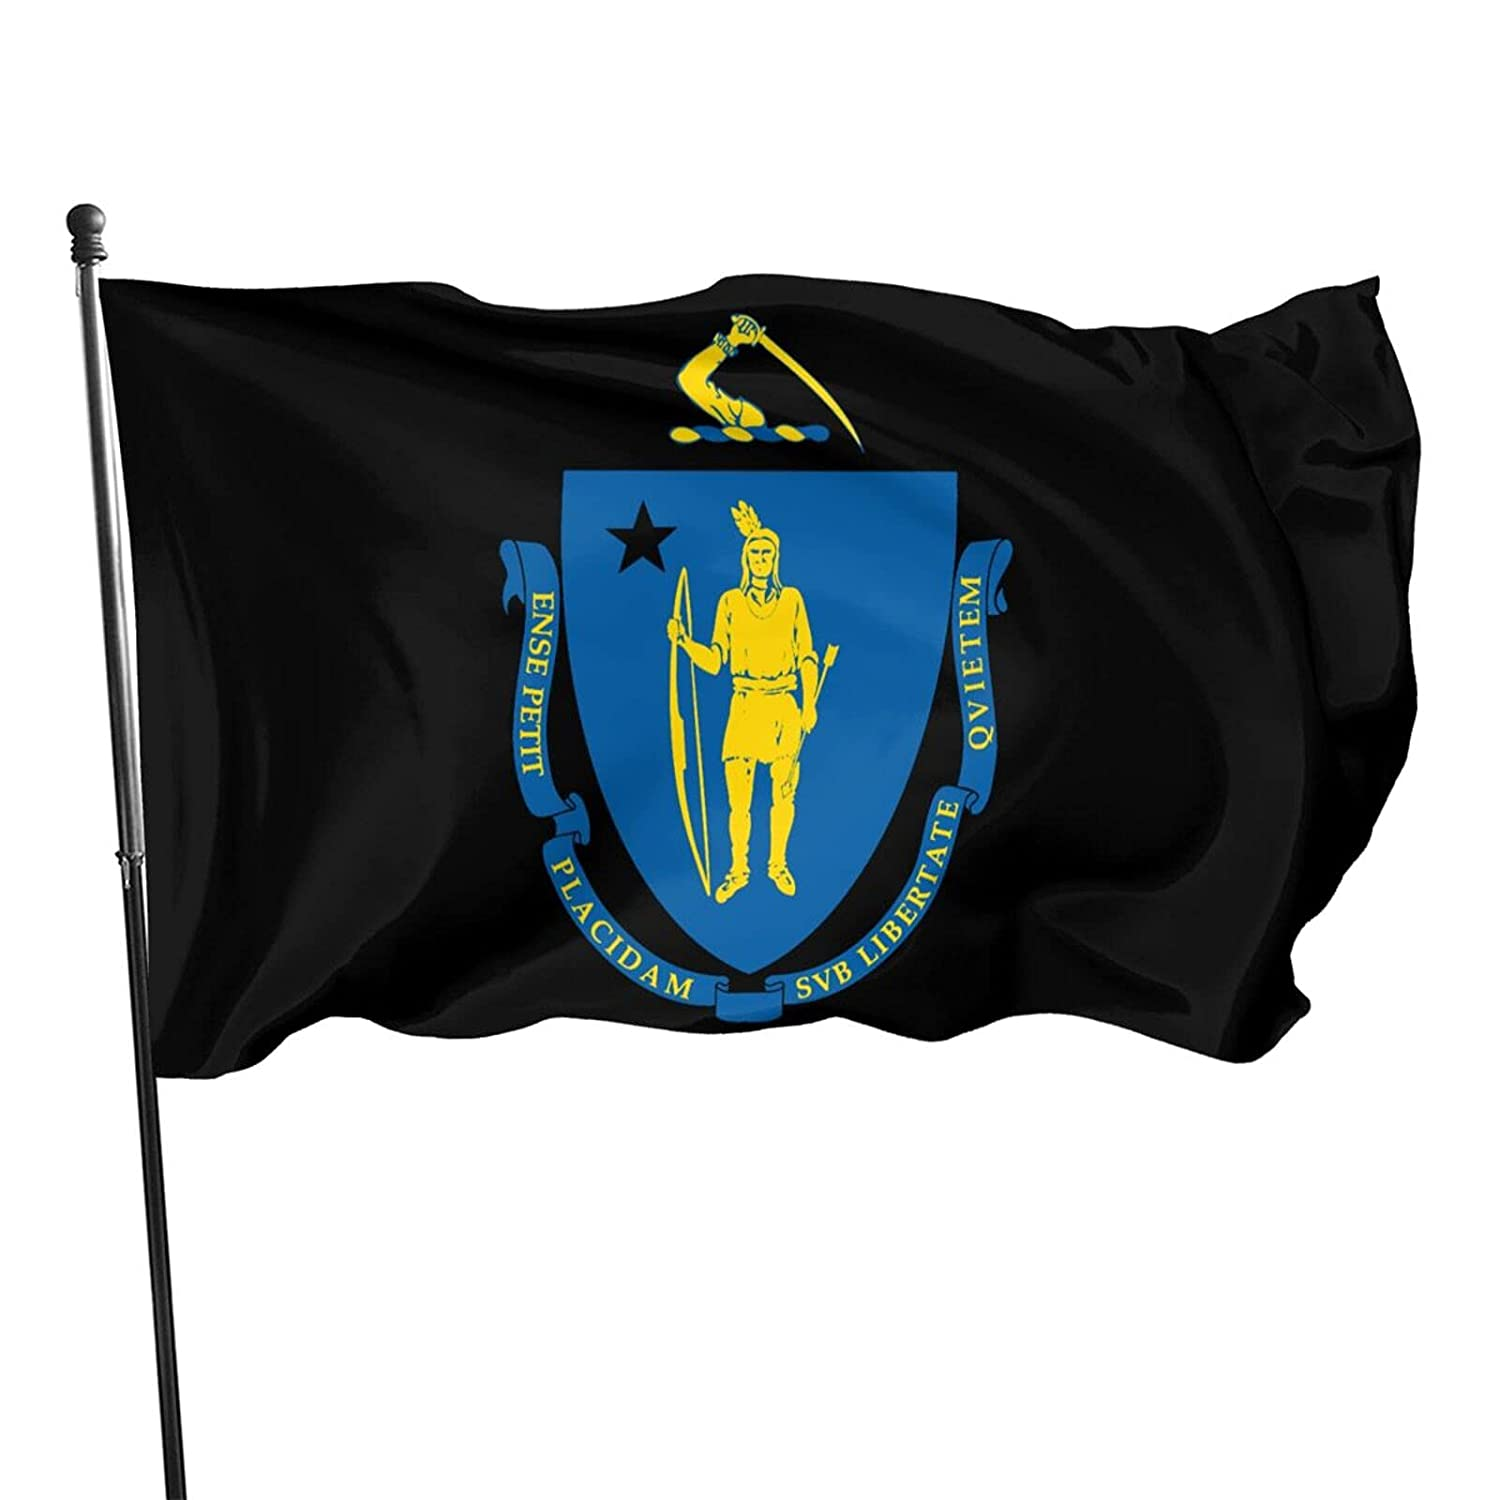 Flag Of Massachusetts Logo Garden Flag Outdoor House Porch Welcome Holiday Decoration Outdoor Flag Suitable For Christmas/Birthday/Happy New Year 3x5 Ft Flag Banner